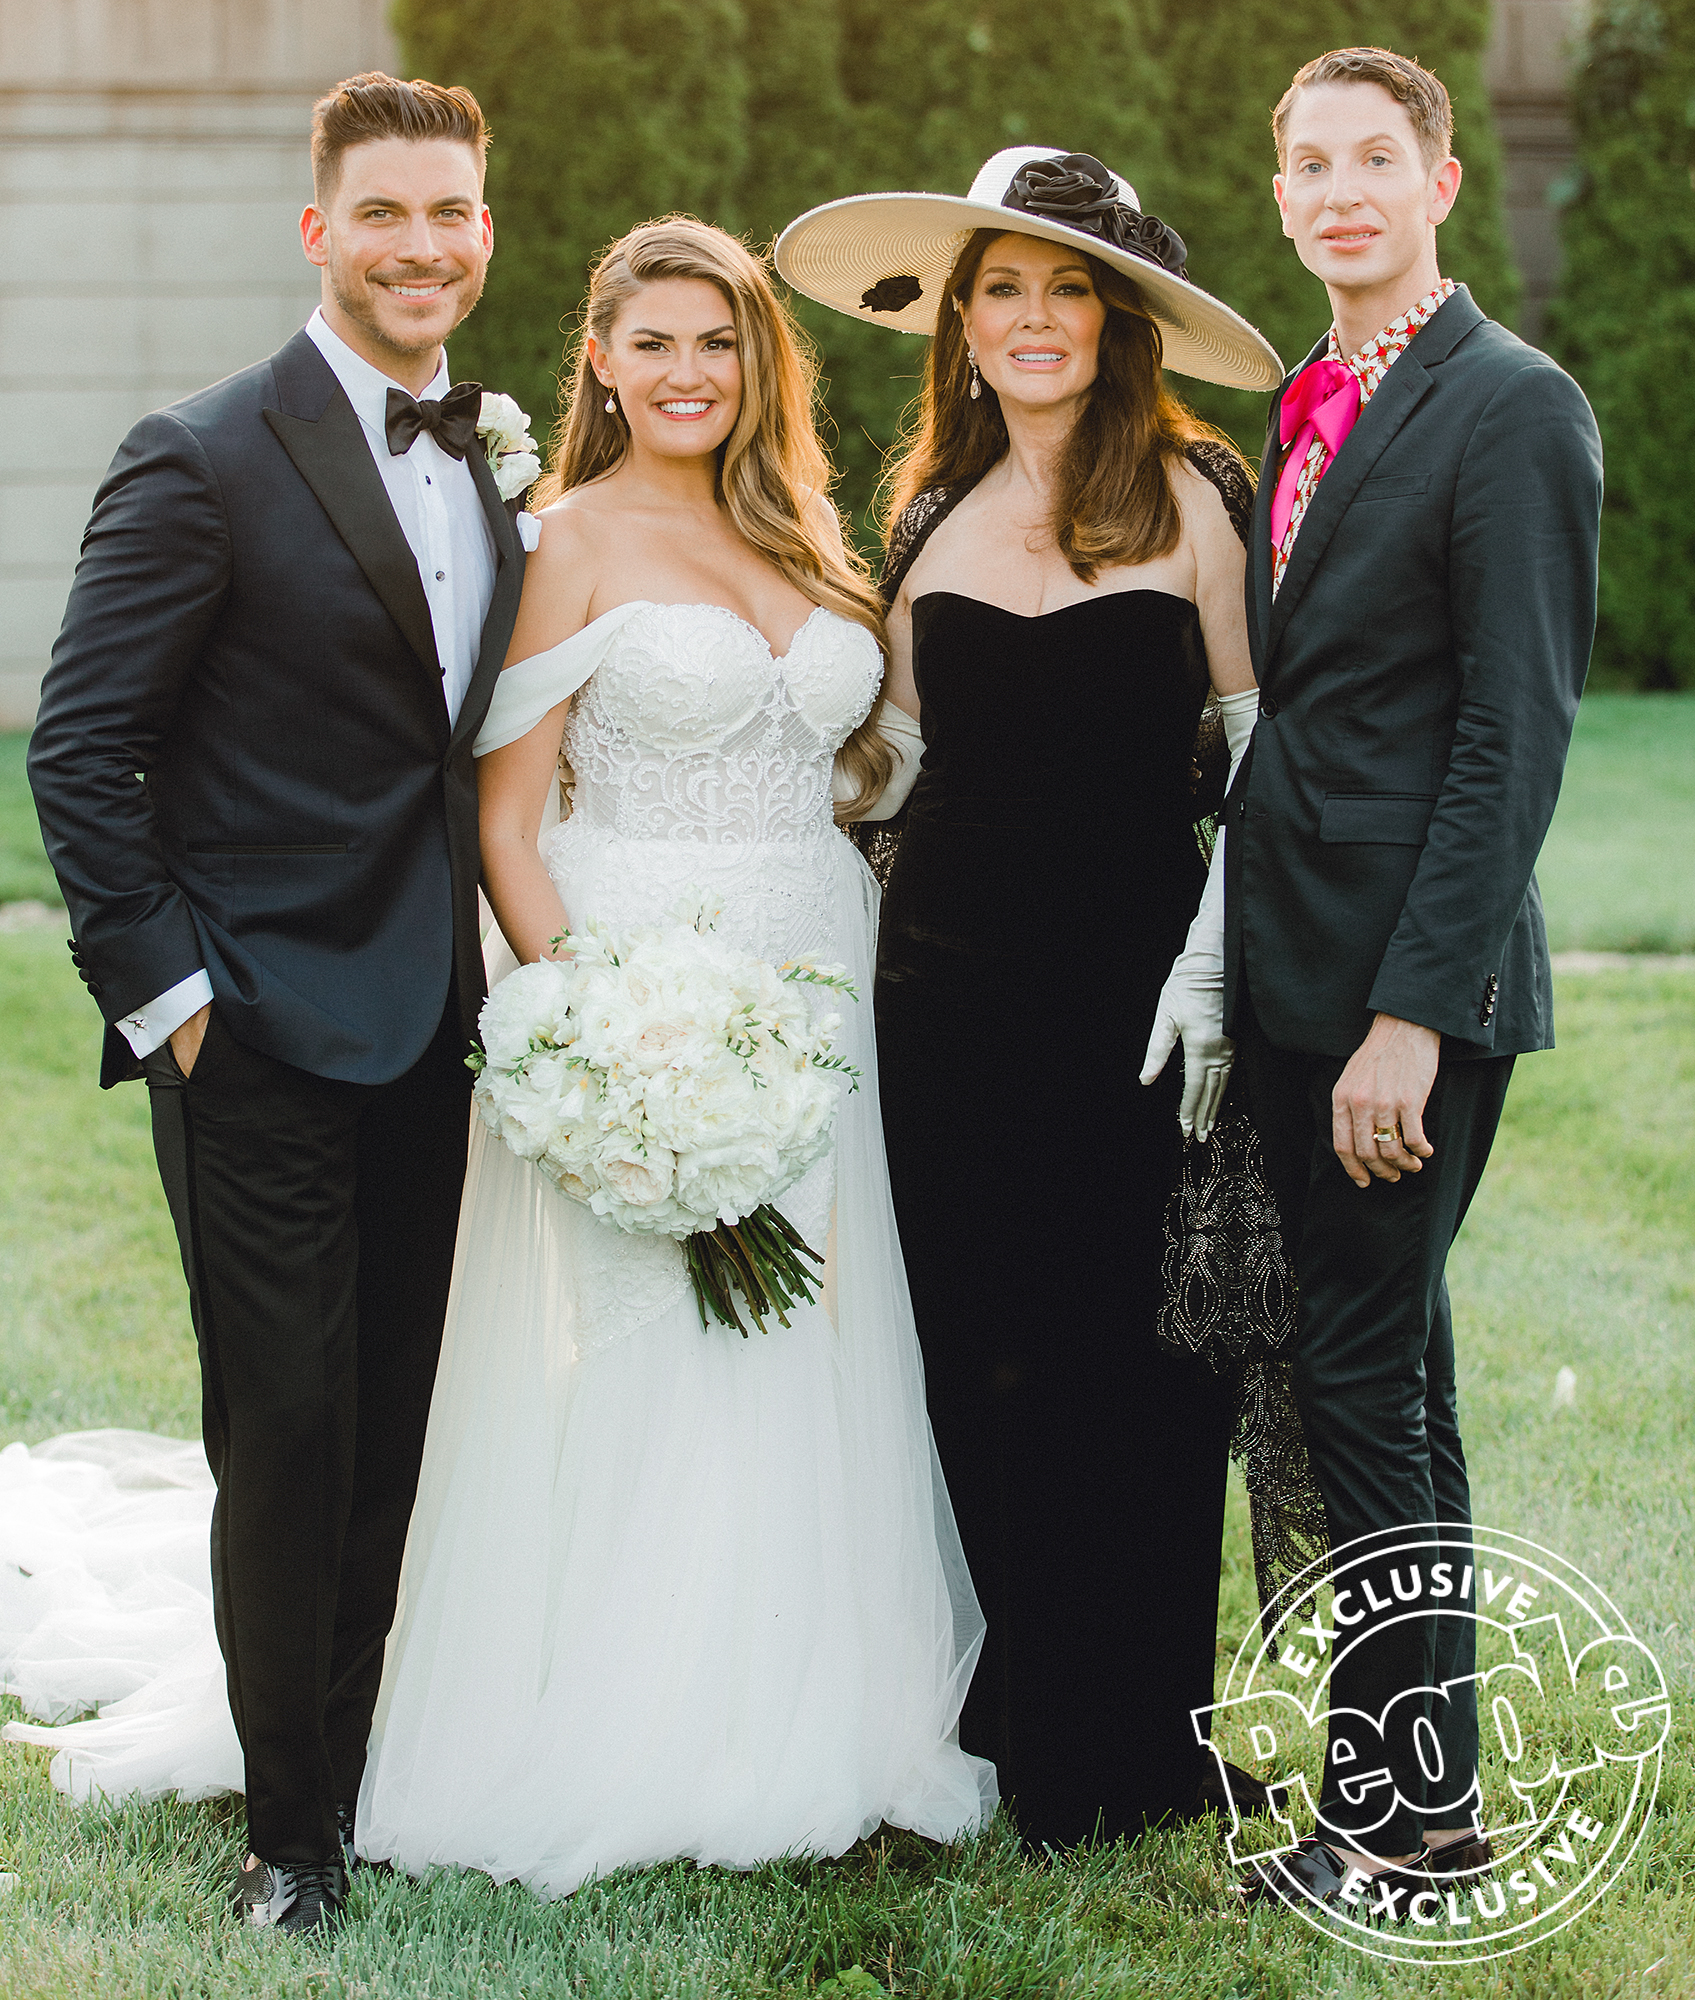 Vanderpump Rules - Brittany and Jax wedding